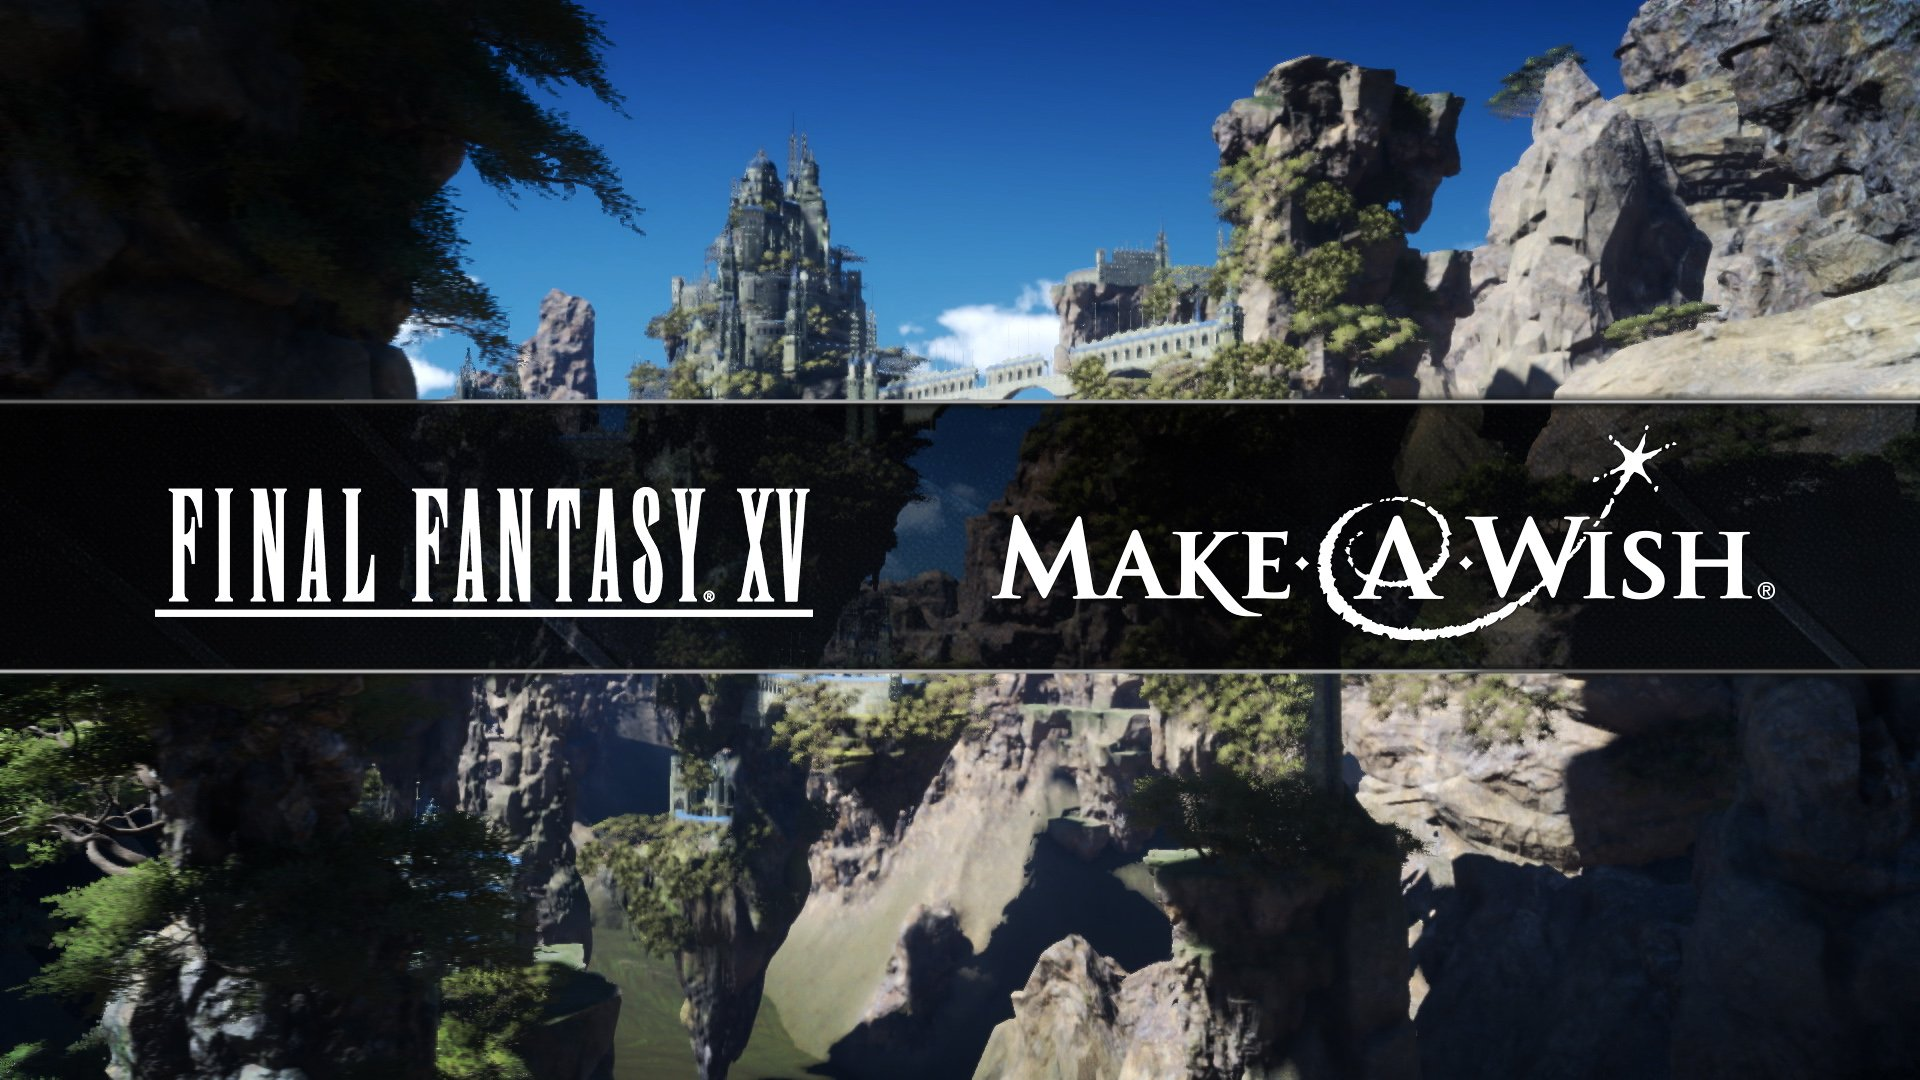 final fantasy xv make a wish